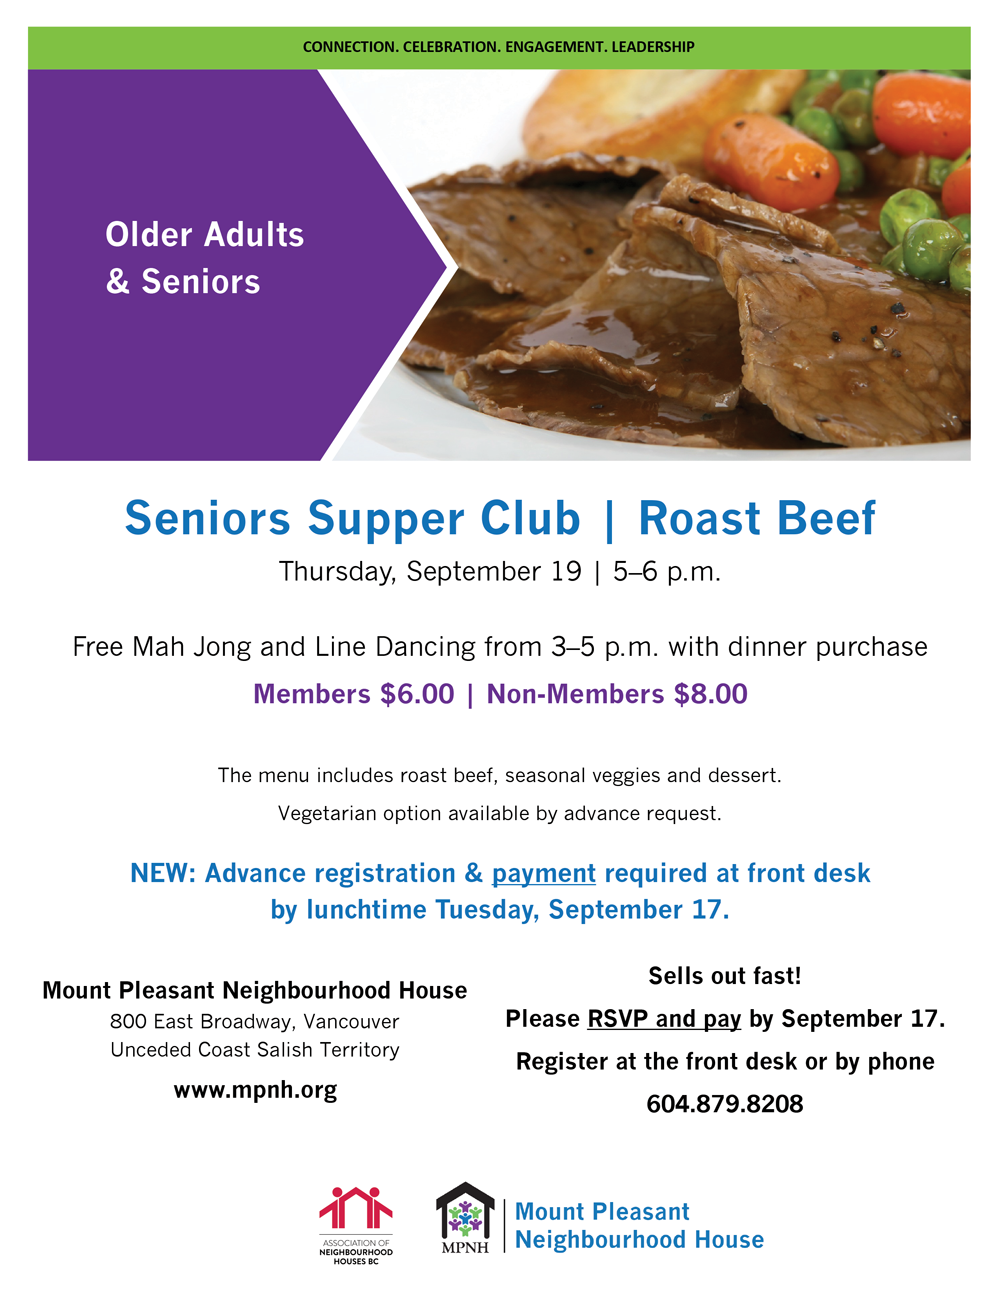 An image of the event poster, featuring a photo of sliced roast beef with gravy and vegetables